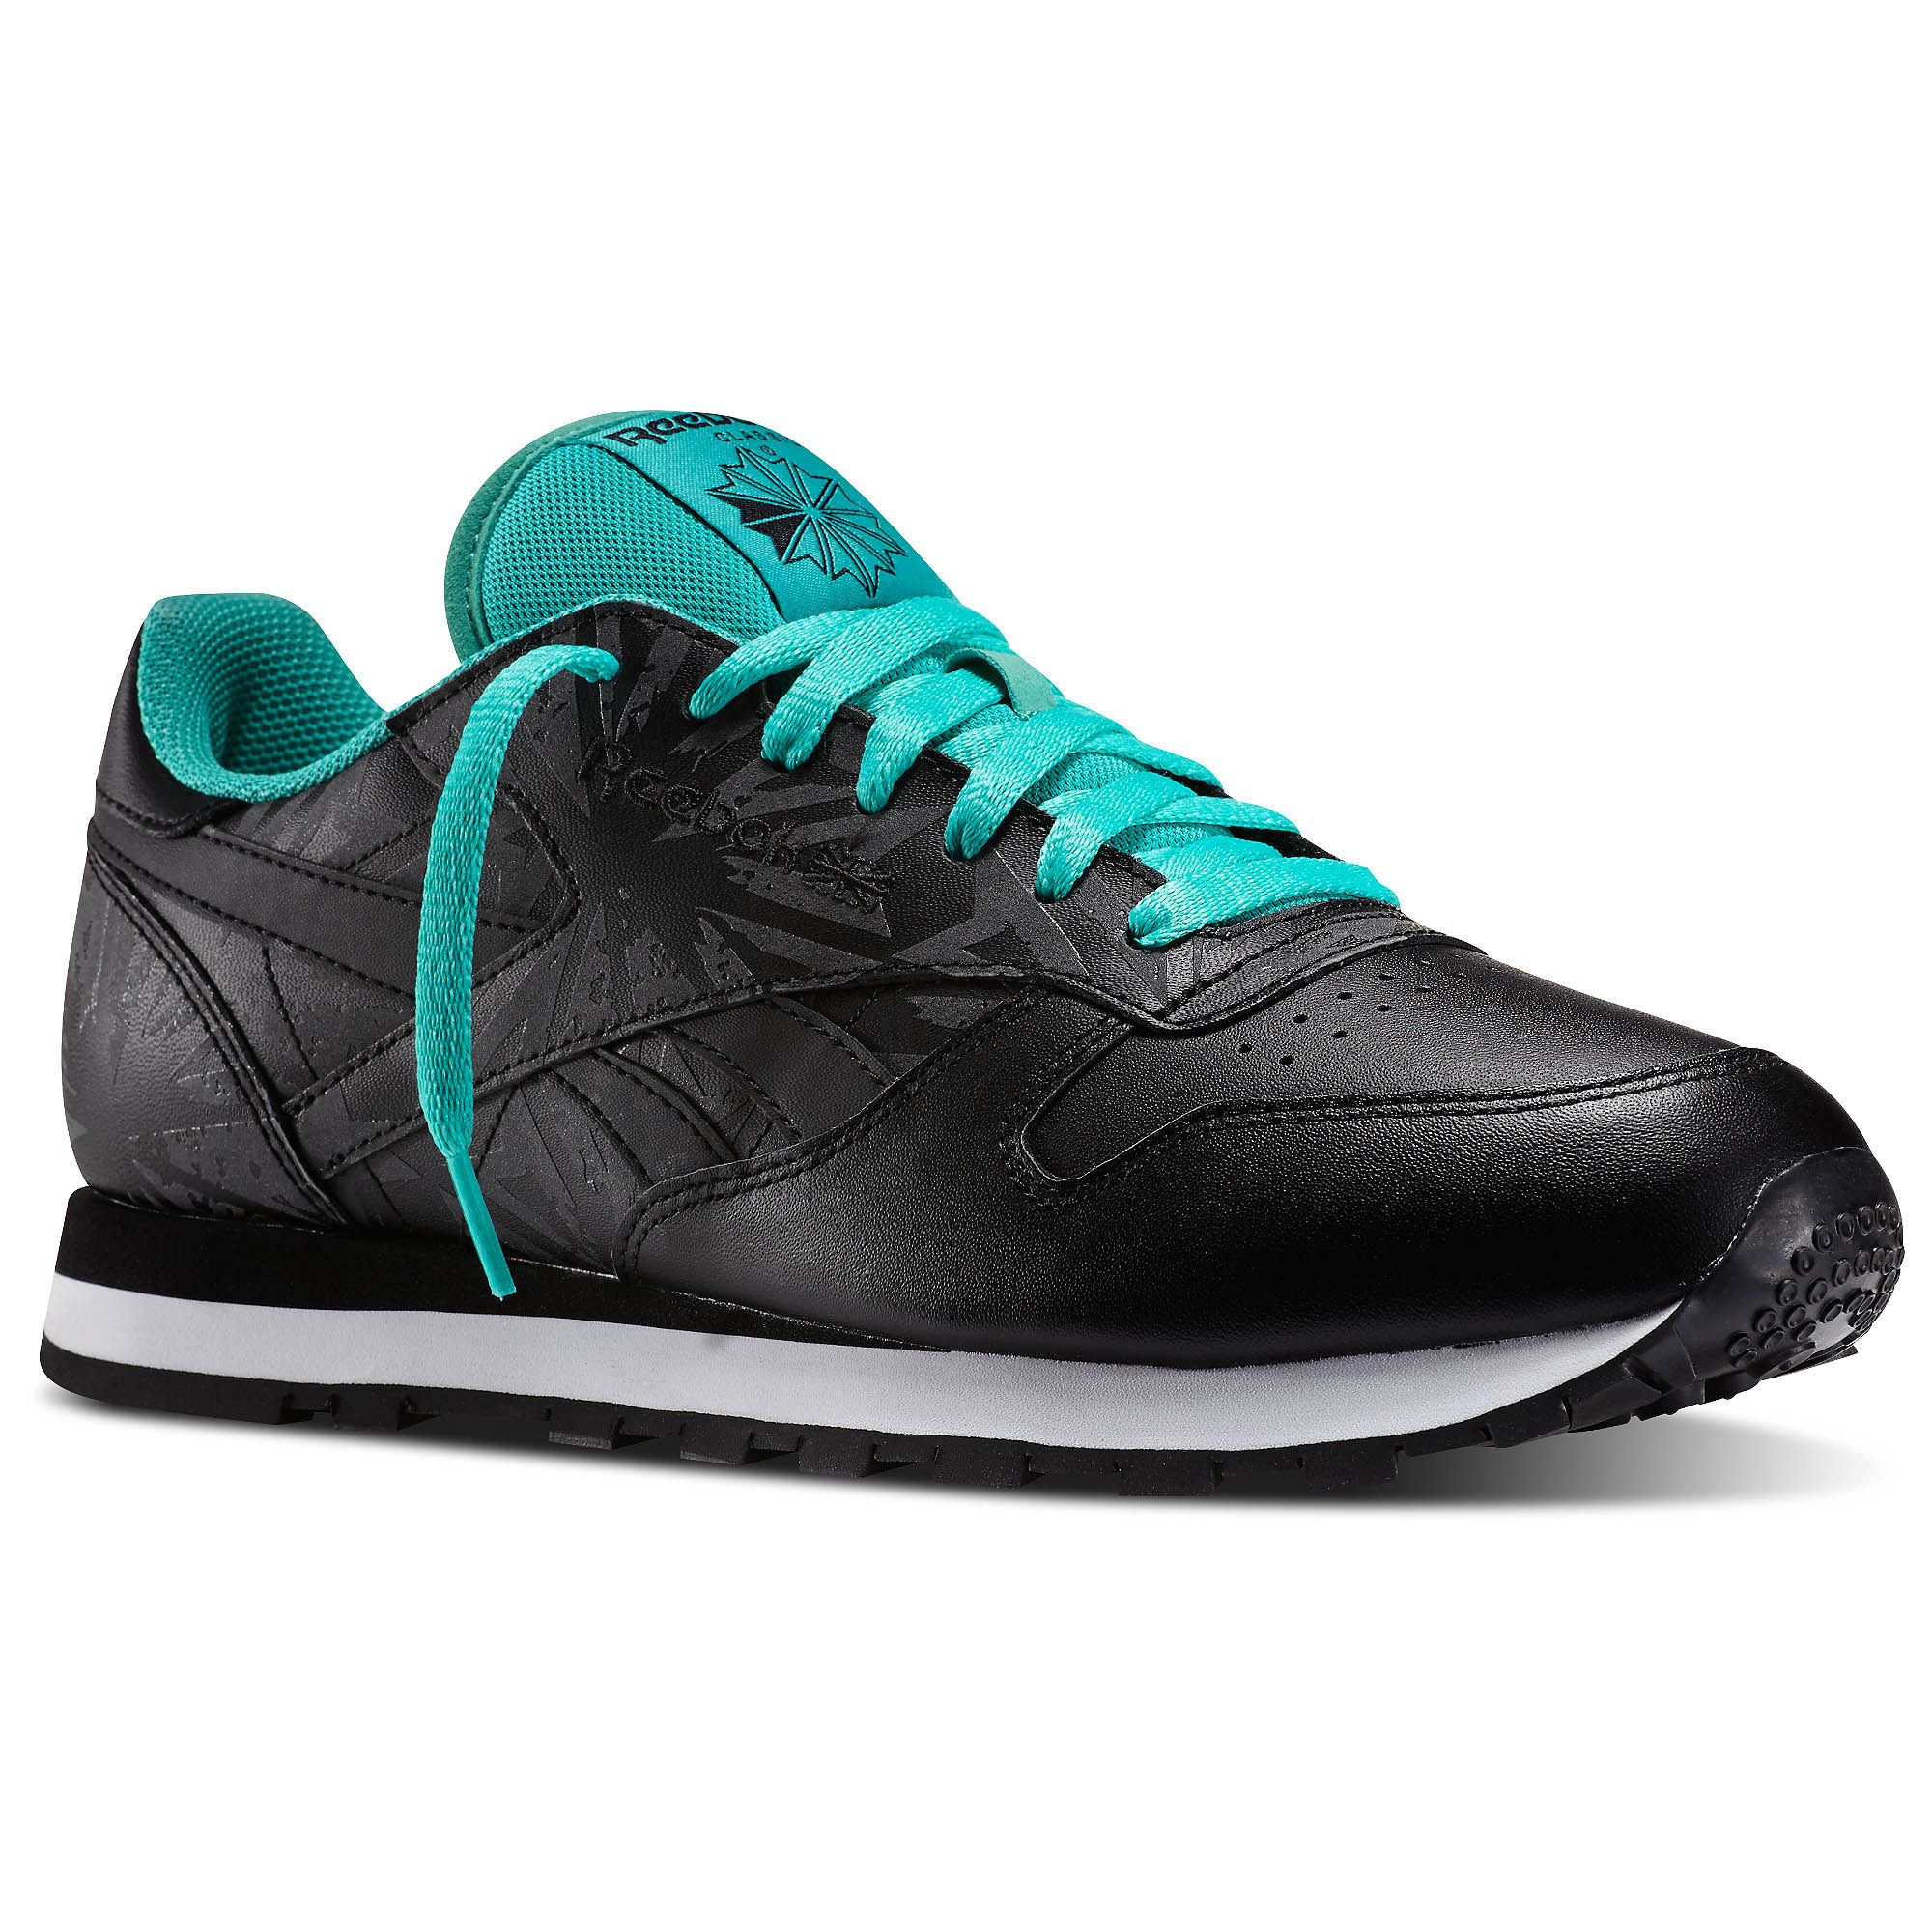 Reebok-Sports-shoes-and-running-shoes-for-men (14)